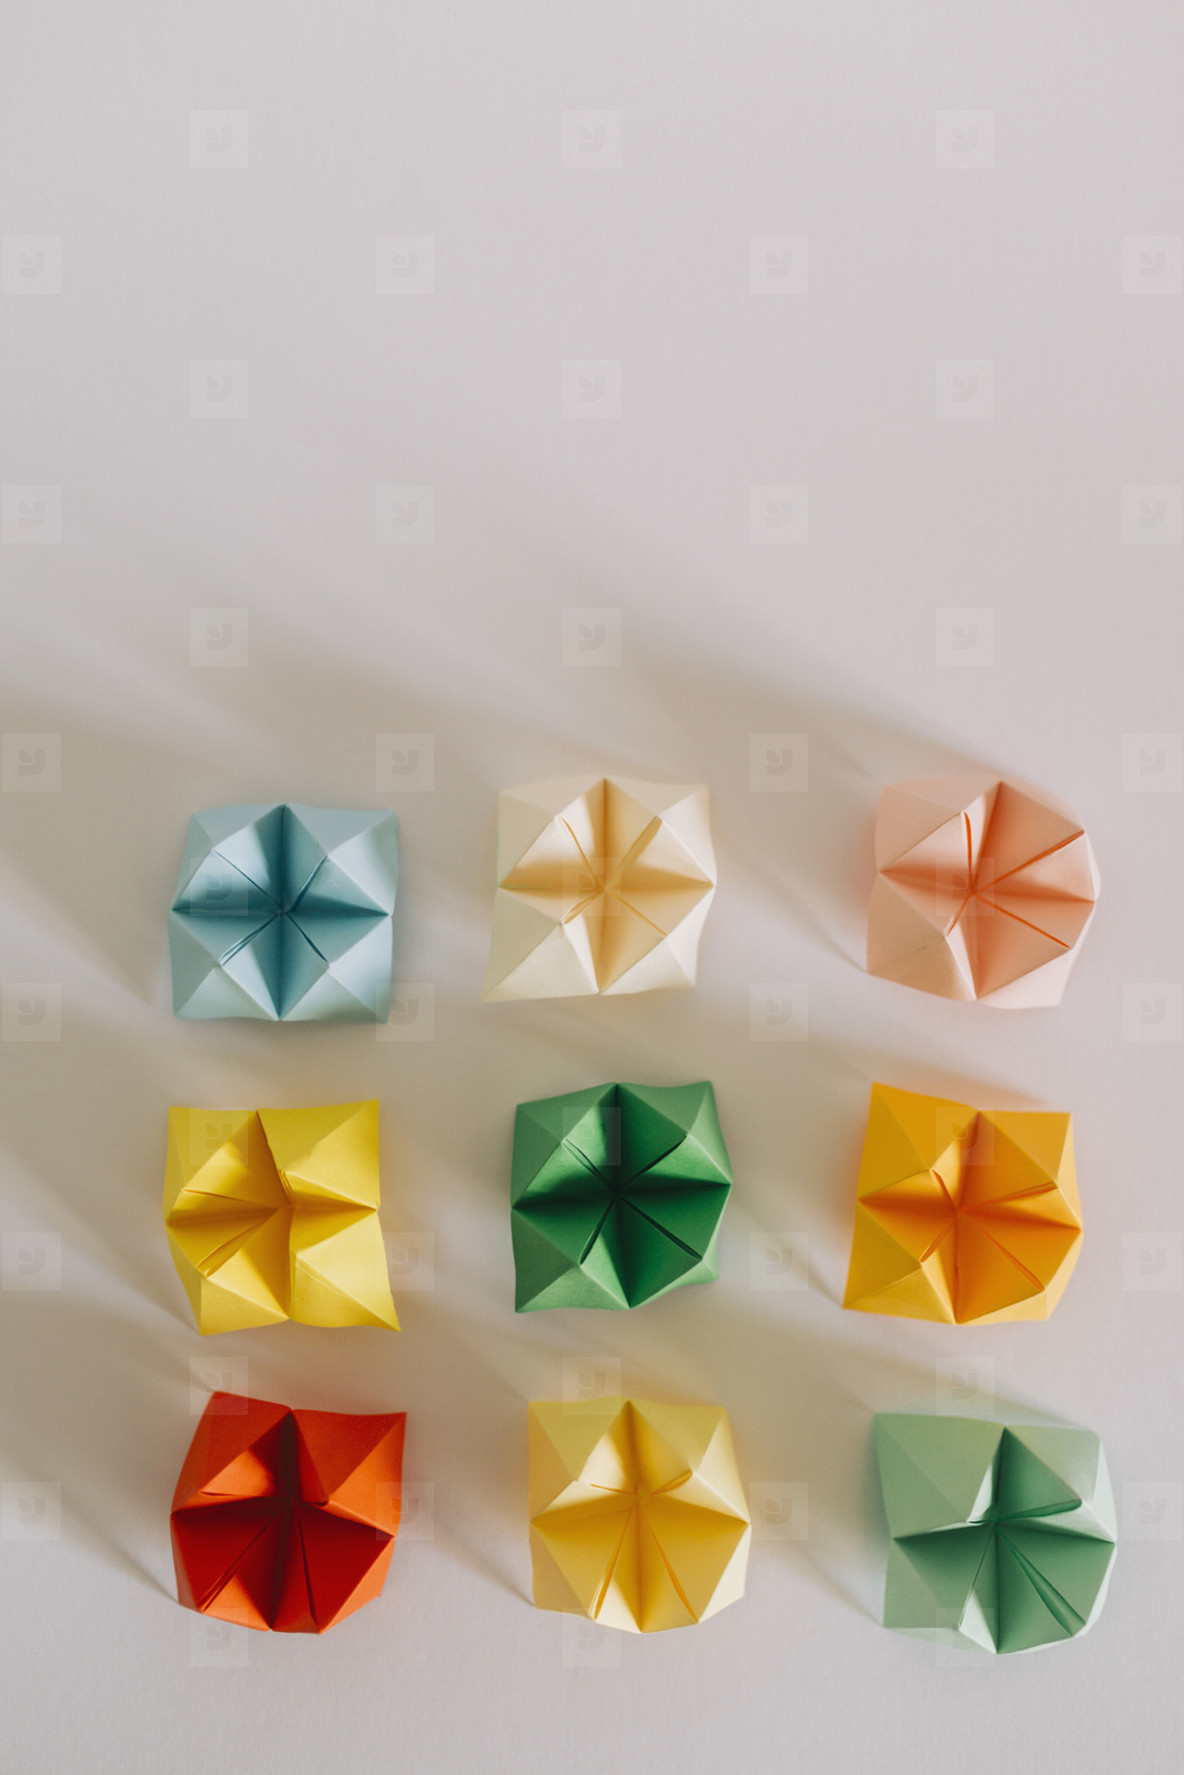 Multicolored origami fortune tellers on white background  01